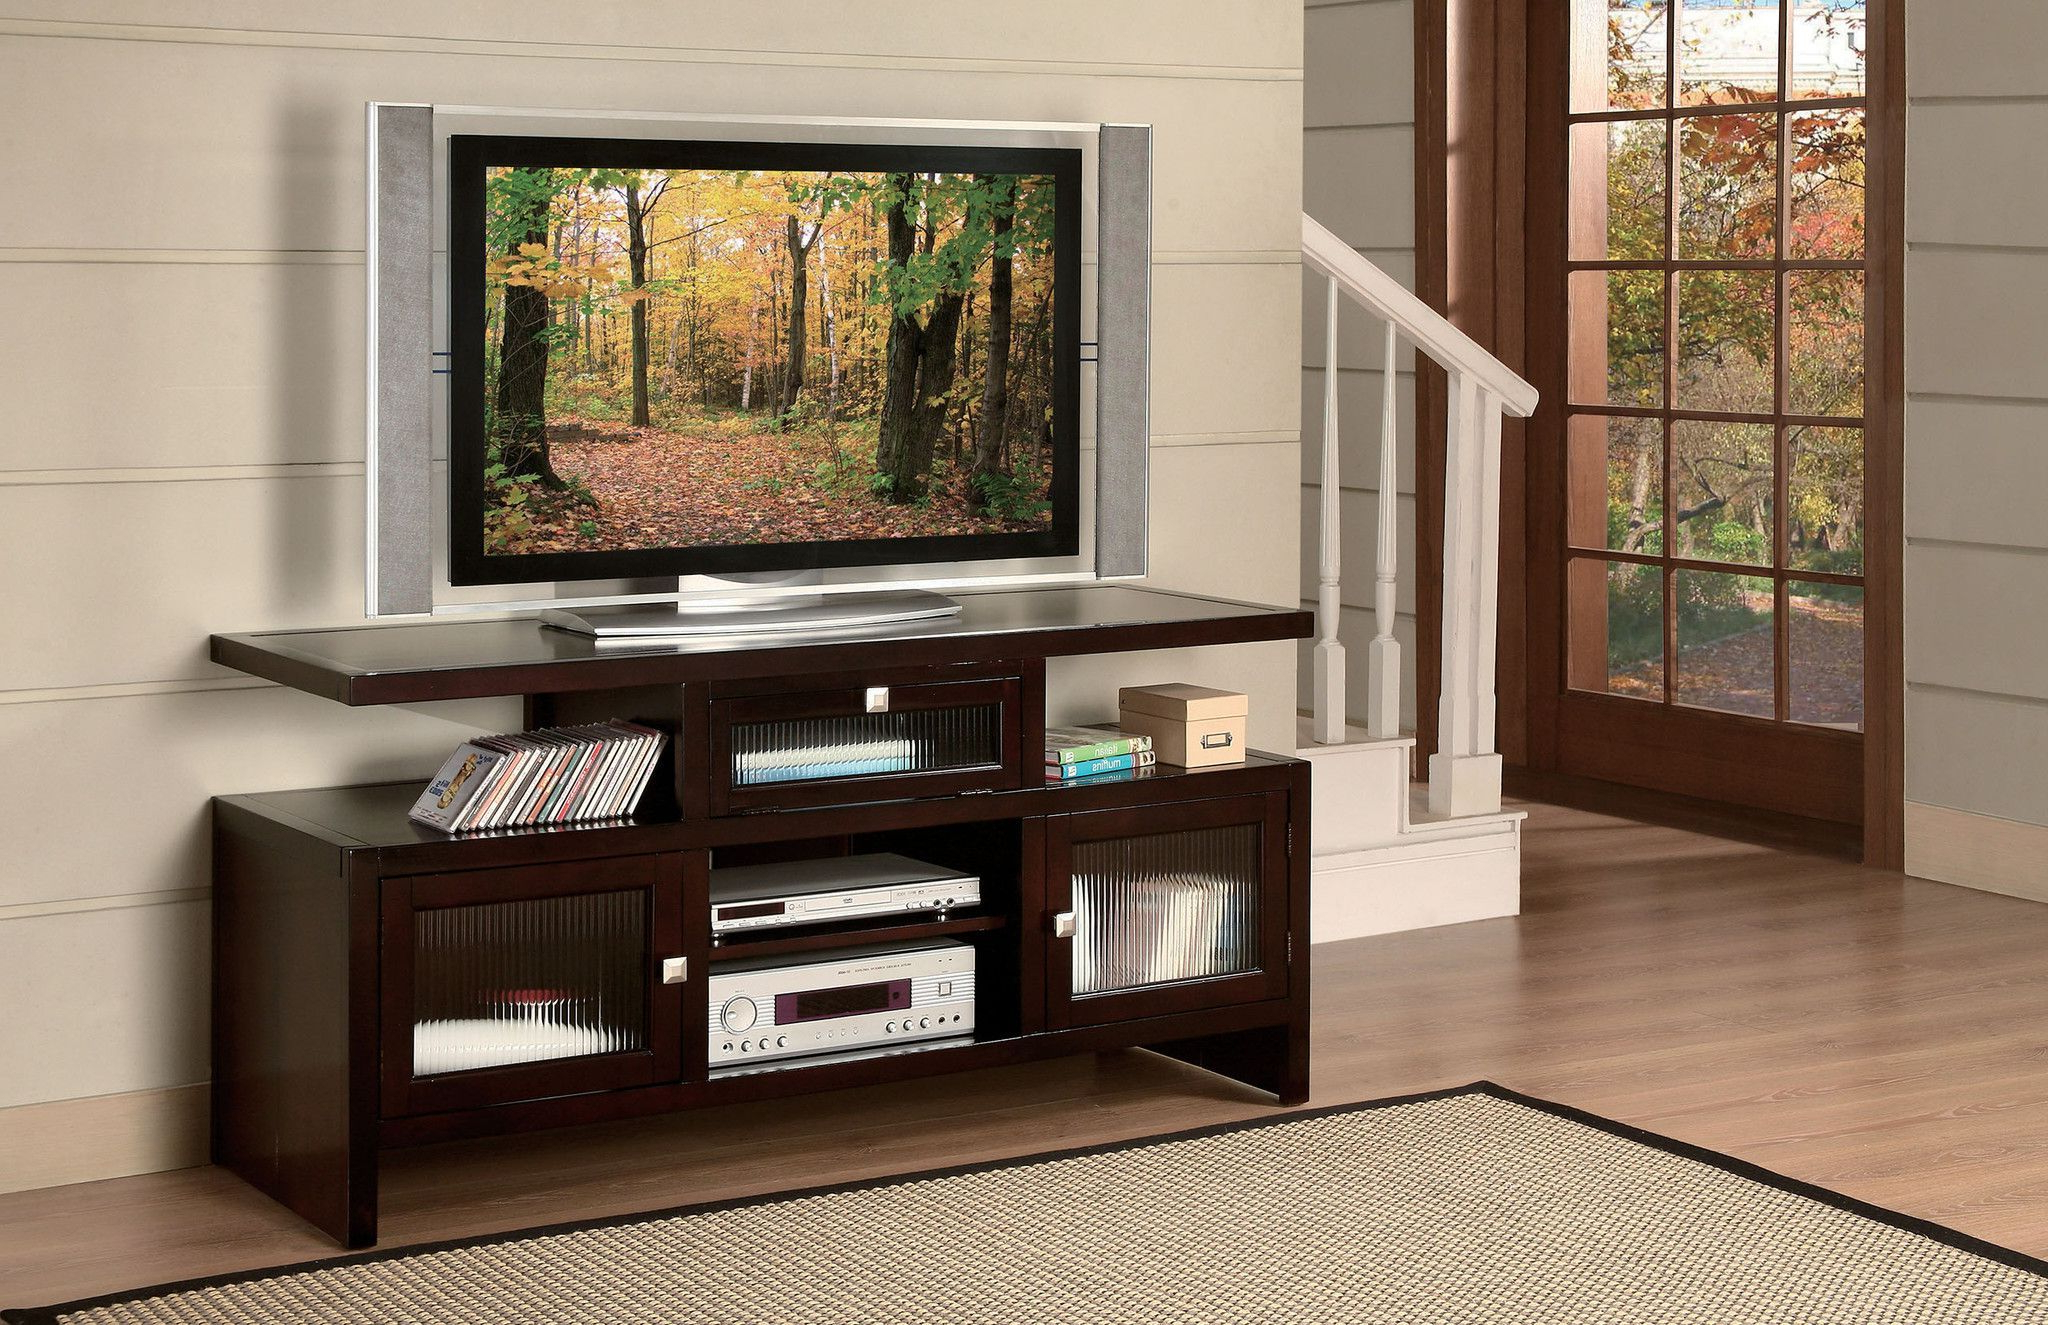 Folding Tv Stand   Tv Stand   Pinterest   Furniture, Acme Furniture Pertaining To Forma 65 Inch Tv Stands (View 16 of 20)